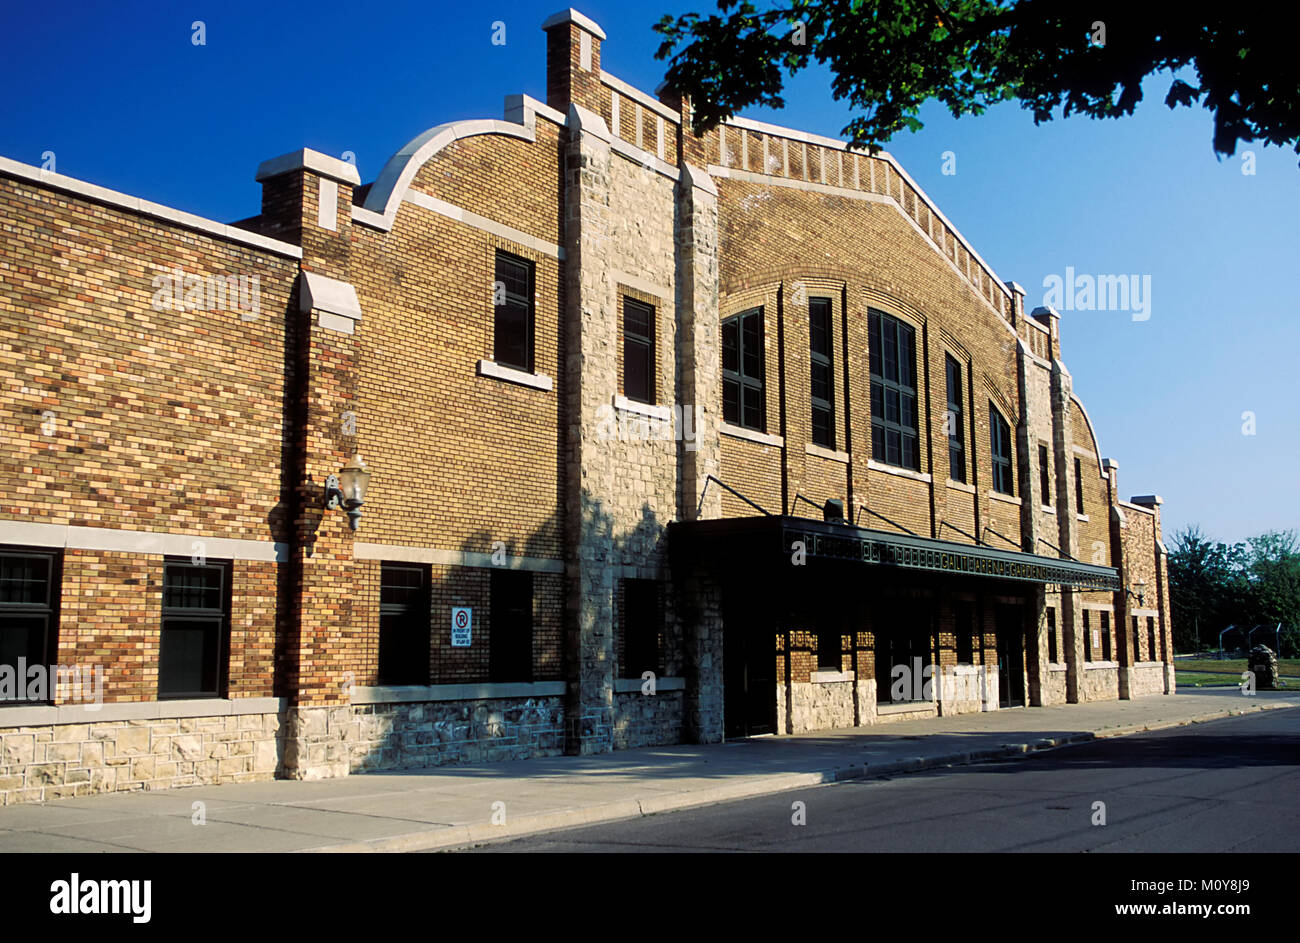 The Galt Arena Gardens ice hockey arena. Cambridge (Galt) Ontario Canada. - Stock Image